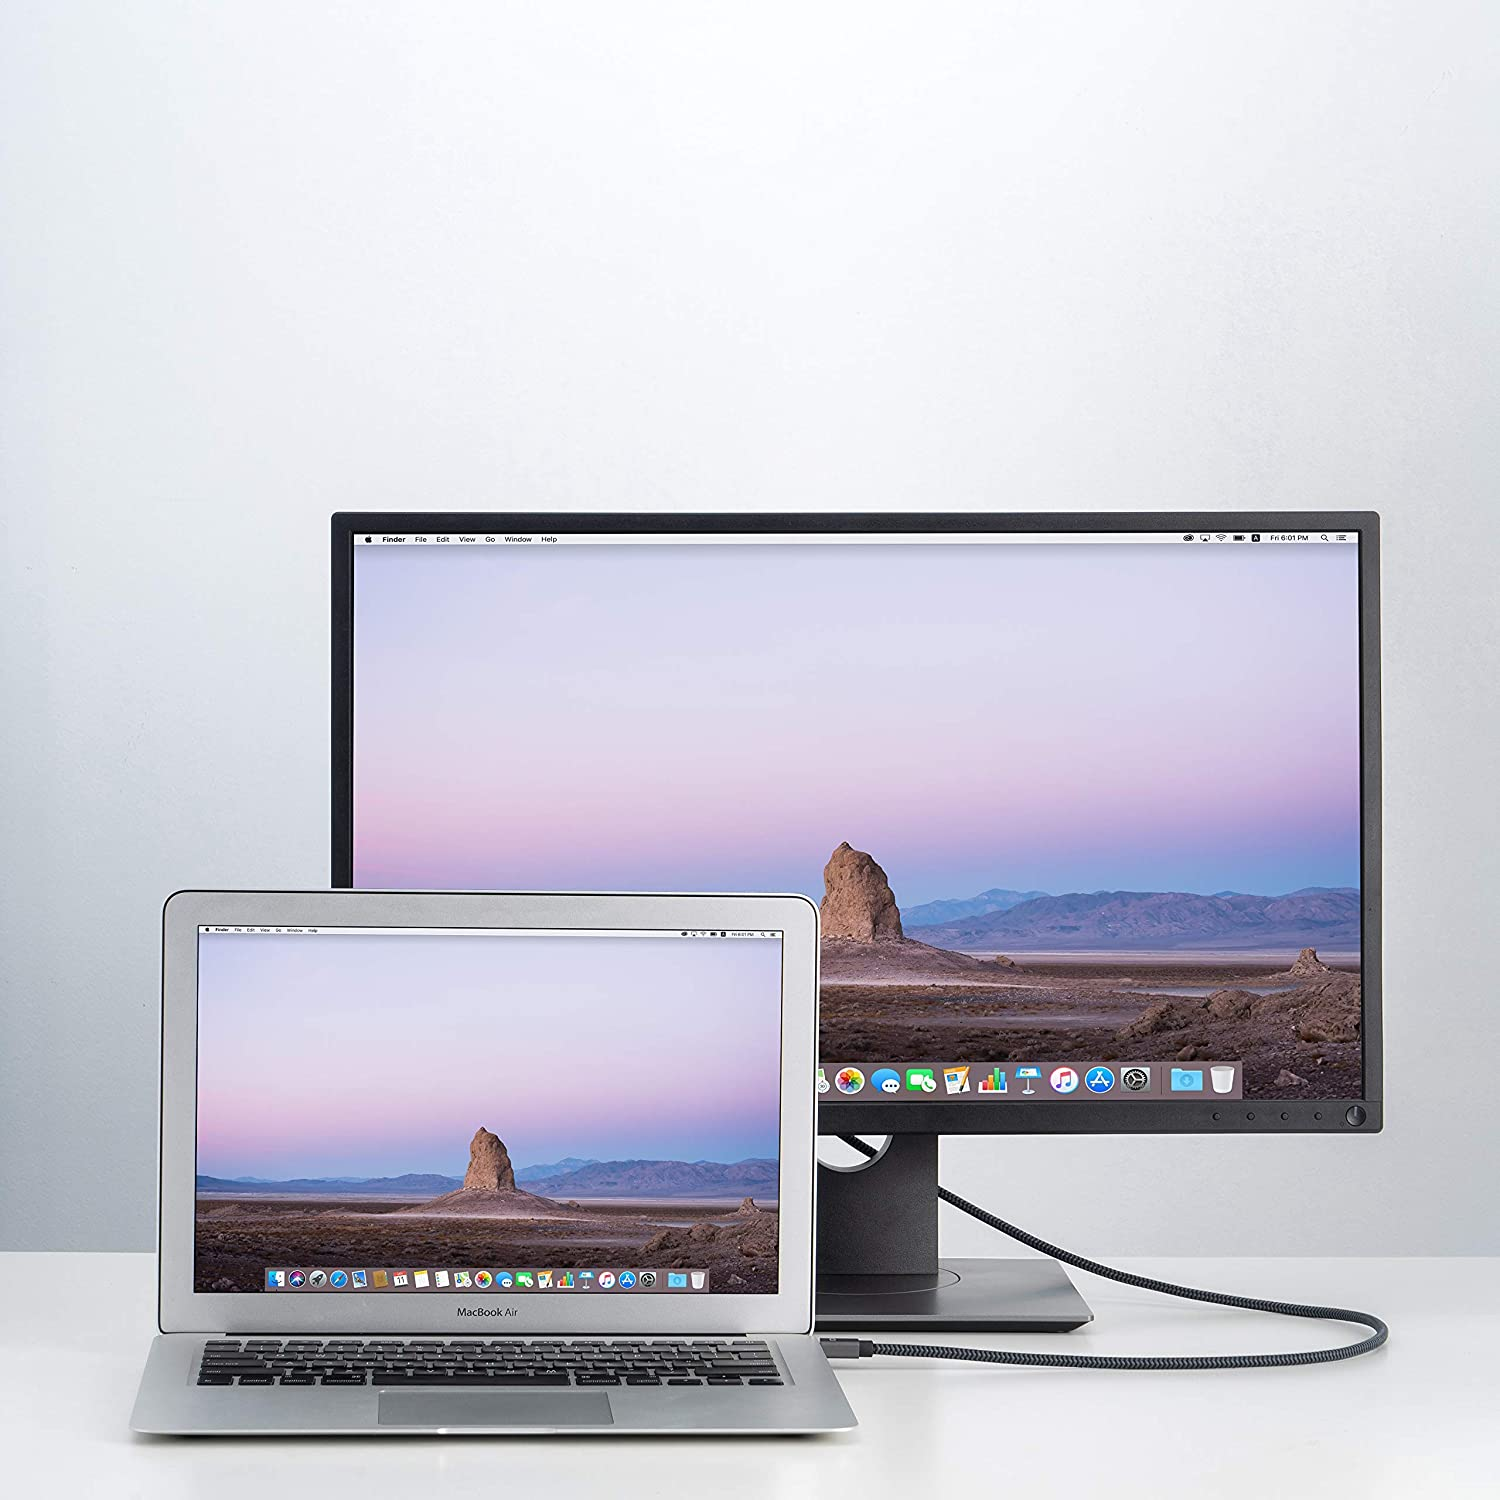 6.6 Feet Mini DisplayPort to DisplayPort Cable Surface Pro//Dock and More Space Grey Thunderbolt to DisplayPort Cable Compatible with MacBook Air//Pro iVANKY 4K@60Hz // 2K@144Hz Mini DP to DP Cable Renewed